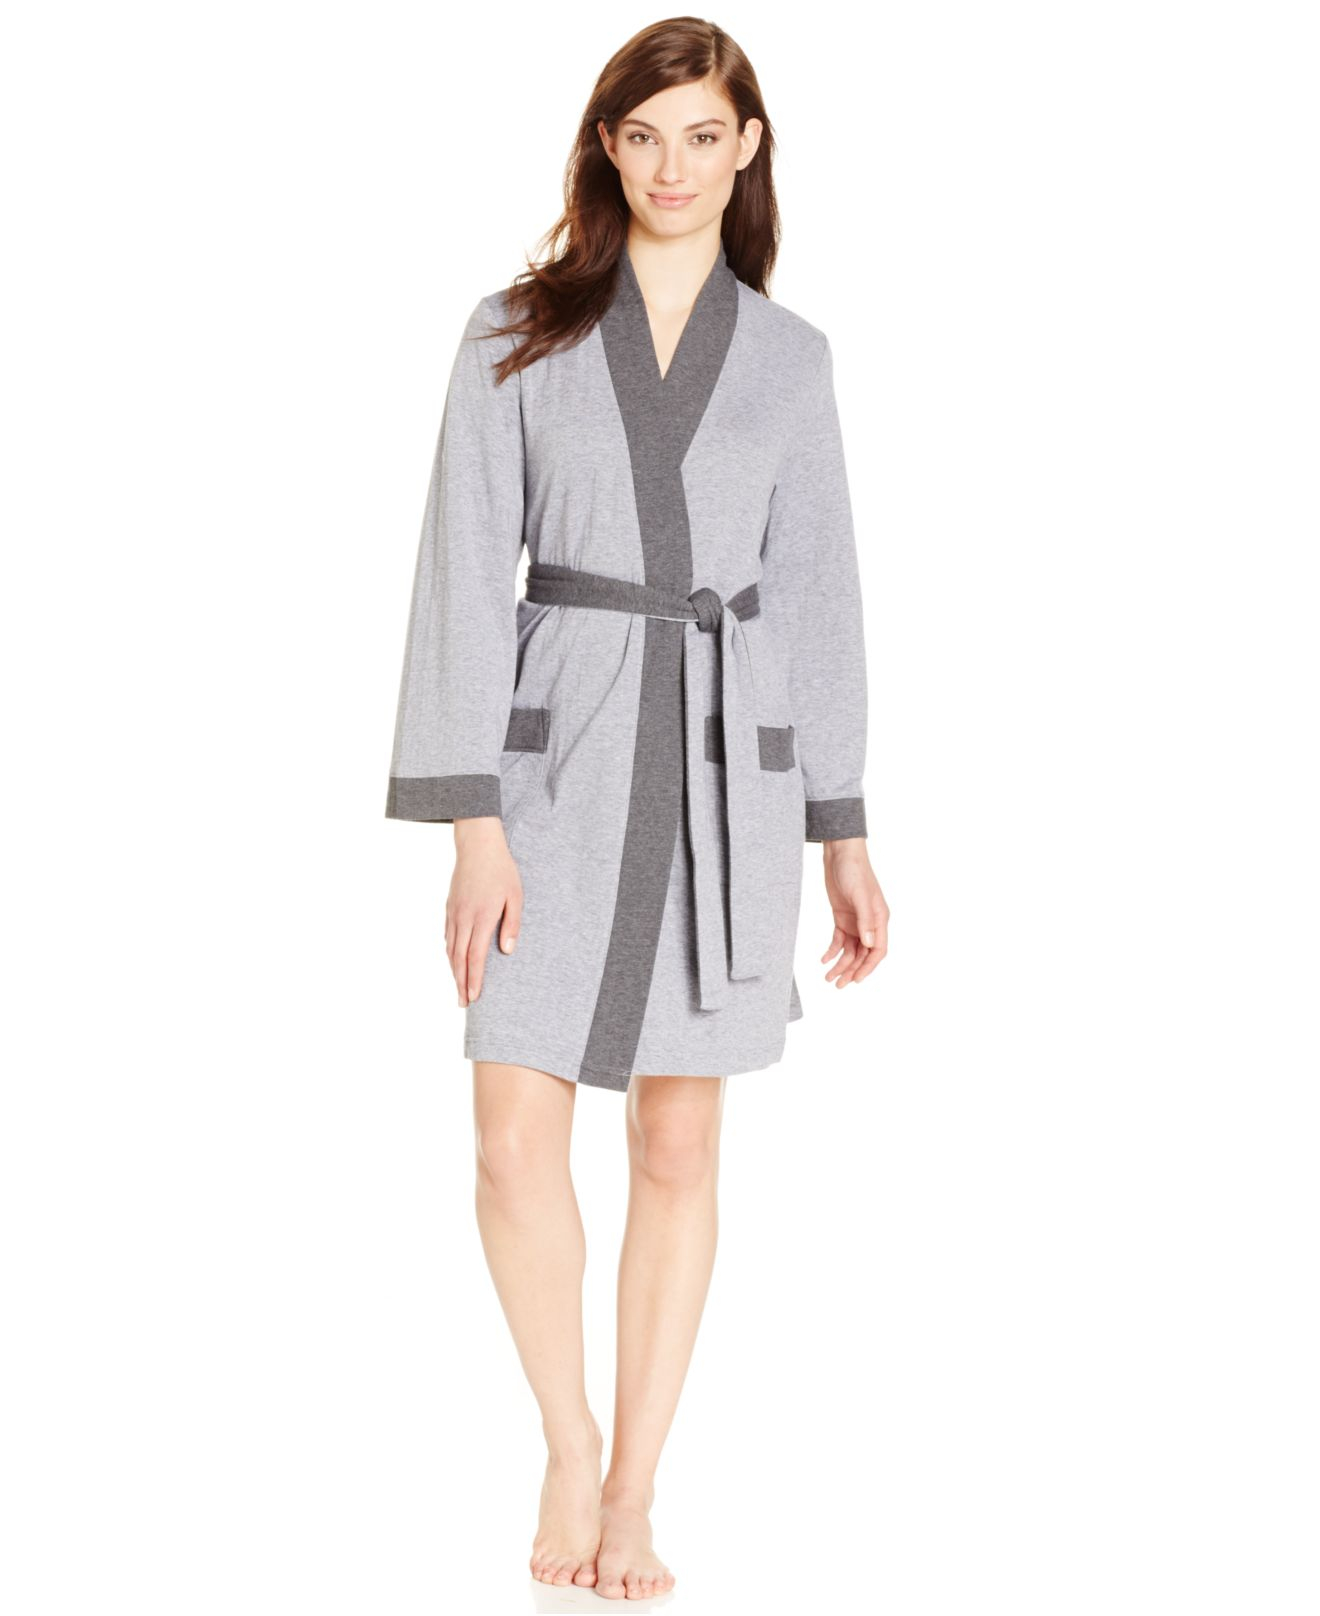 Charter Club Double Knit Robe In Gray (Charcoal Heather